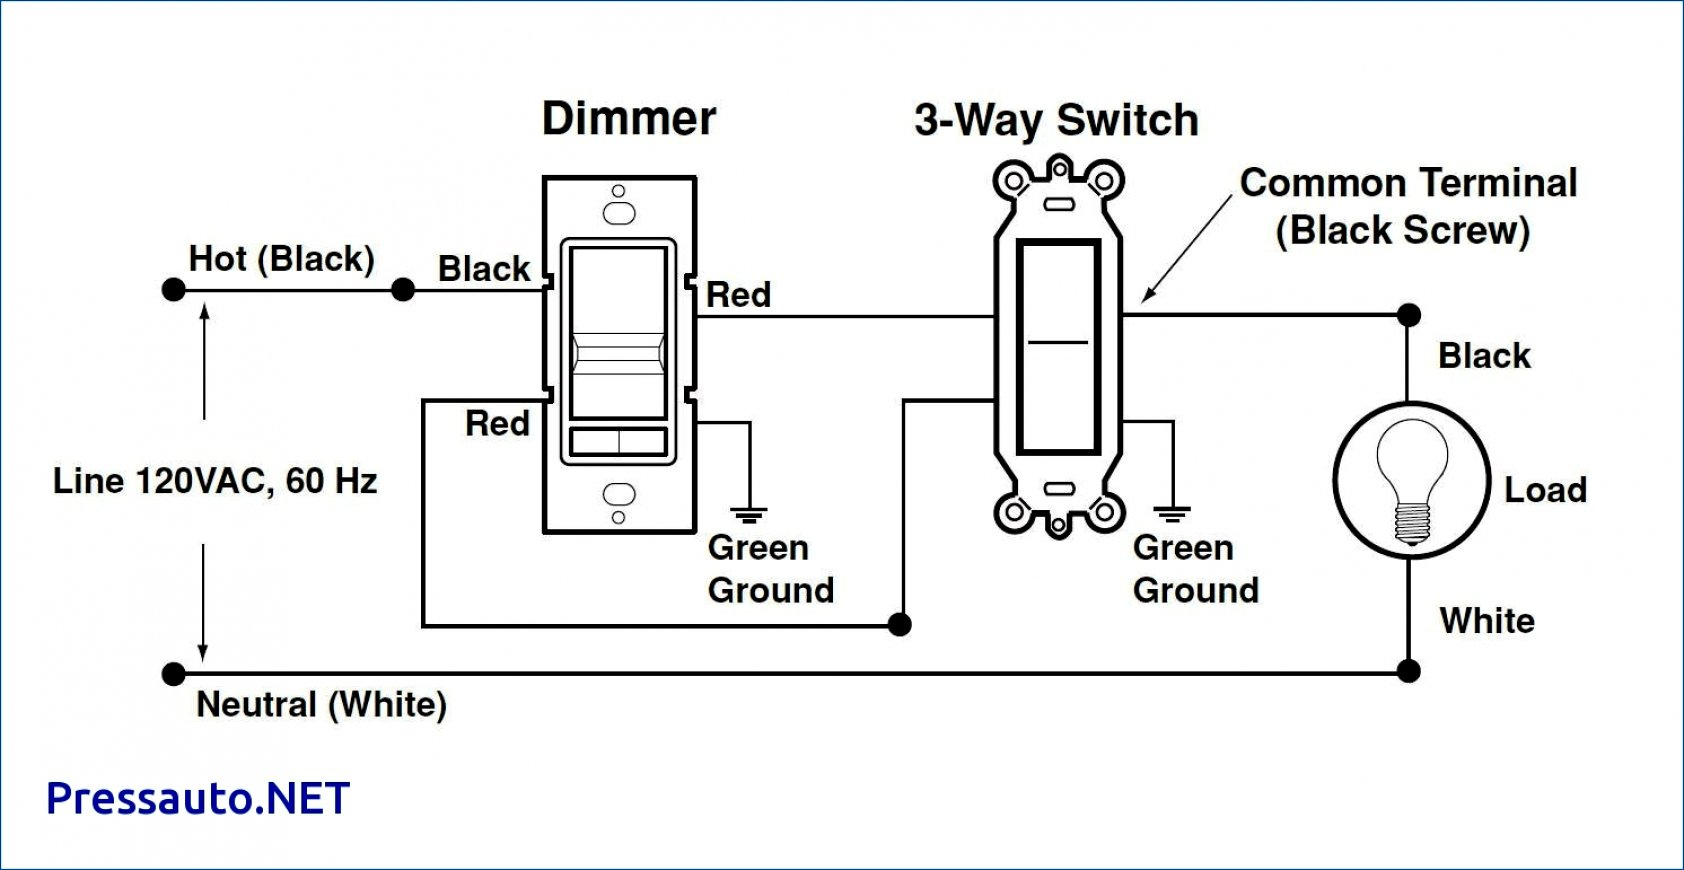 Blue Screw Lutron 3 Way Dimmer Switch Wiring Diagram | Wiring Diagram - Lutron 3 Way Dimmer Switch Wiring Diagram